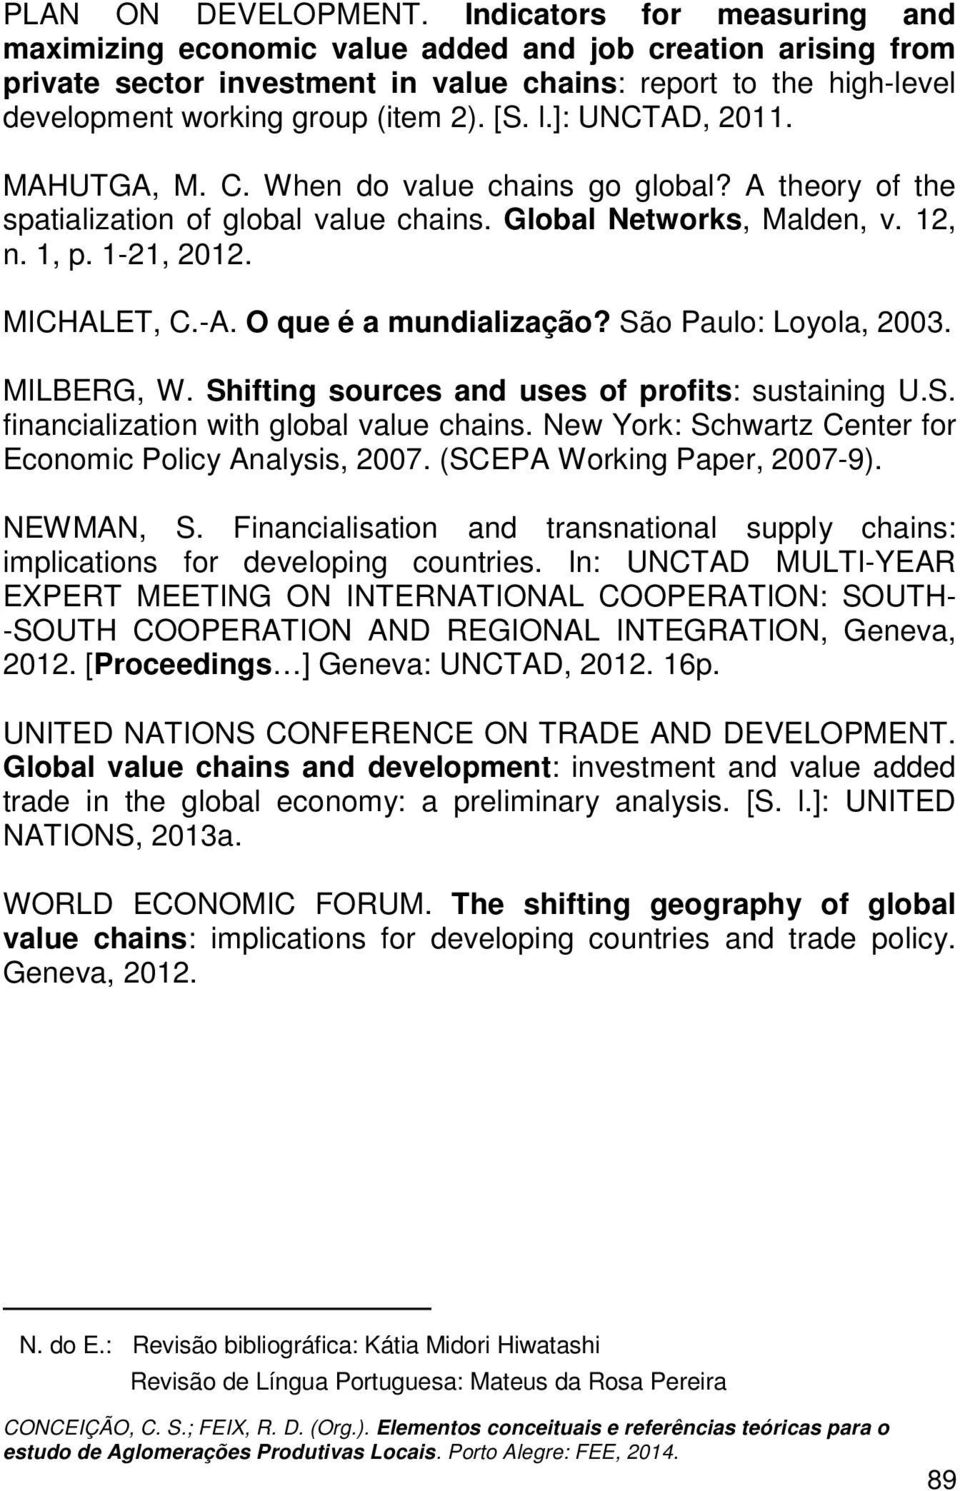 l.]: UNCTAD, 2011. MAHUTGA, M. C. When do value chains go global? A theory of the spatialization of global value chains. Global Networks, Malden, v. 12, n. 1, p. 1-21, 2012. MICHALET, C.-A.